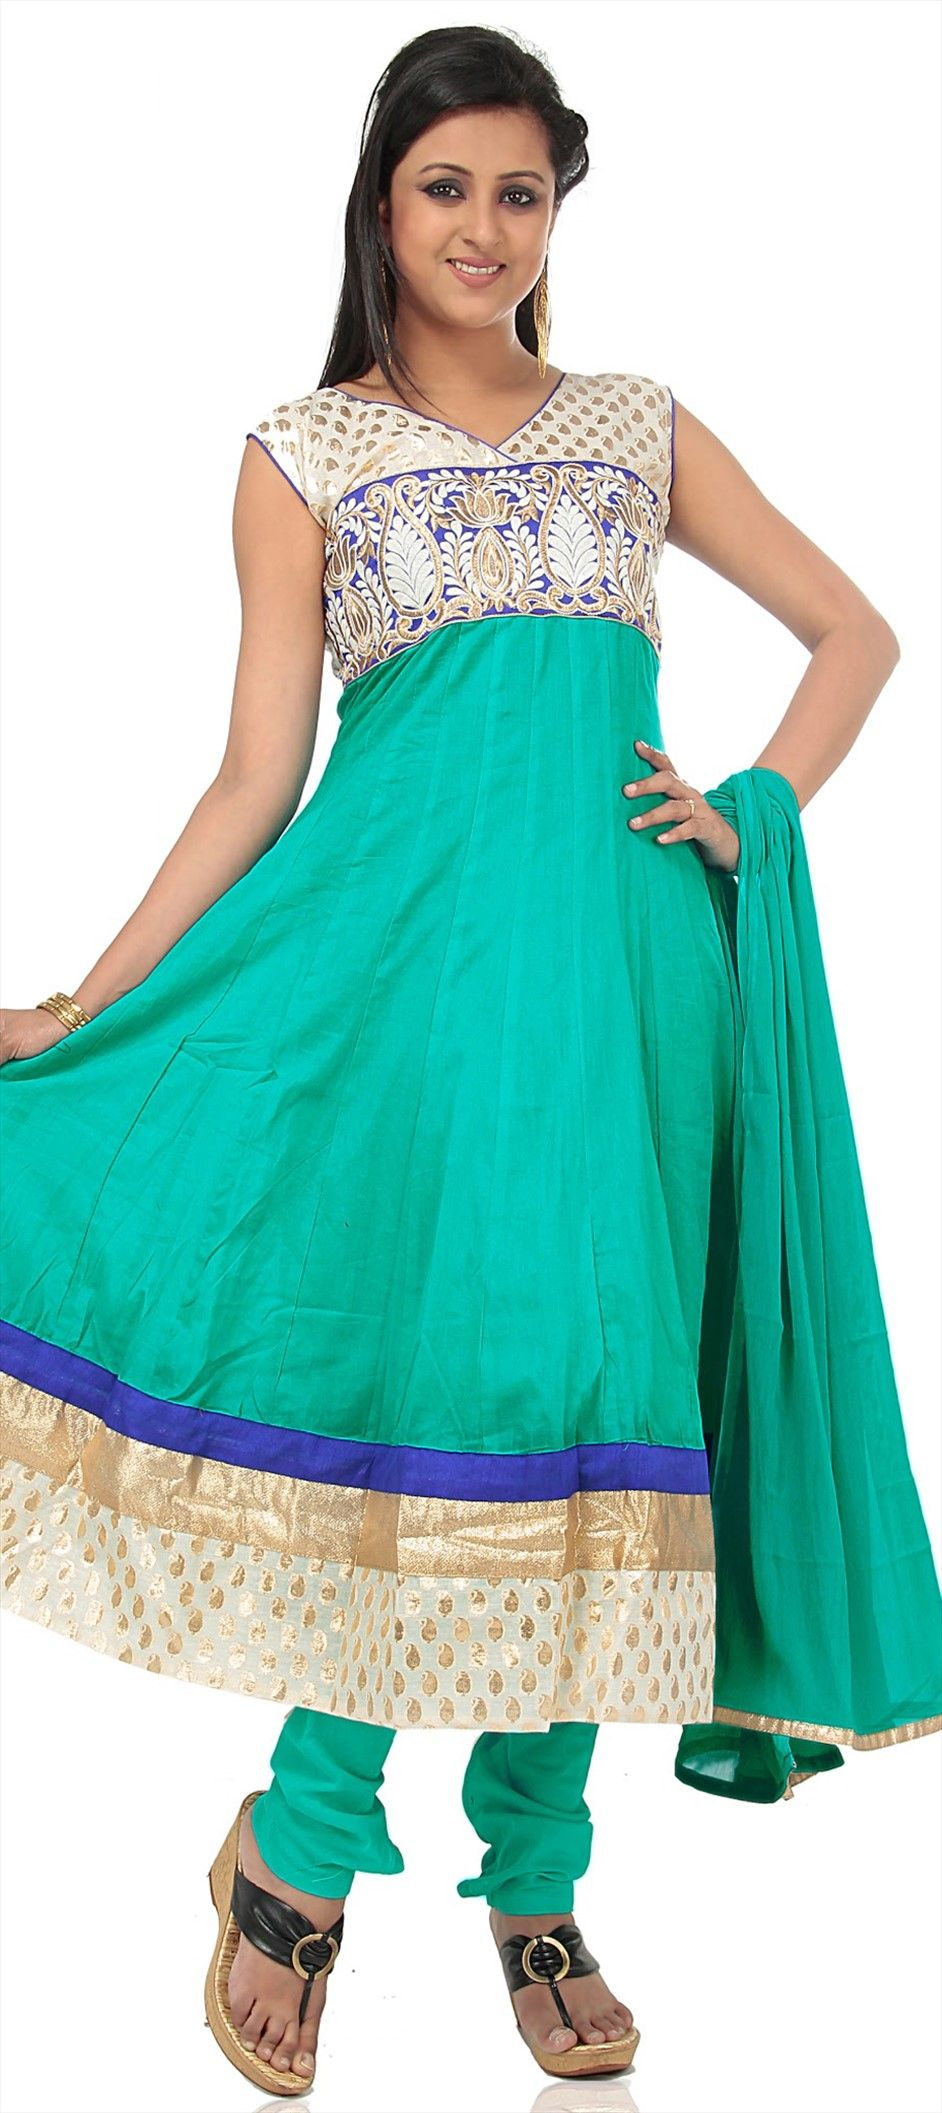 409302: Green color family stitched Anarkali Suits. $51! Yay cotton ;-)